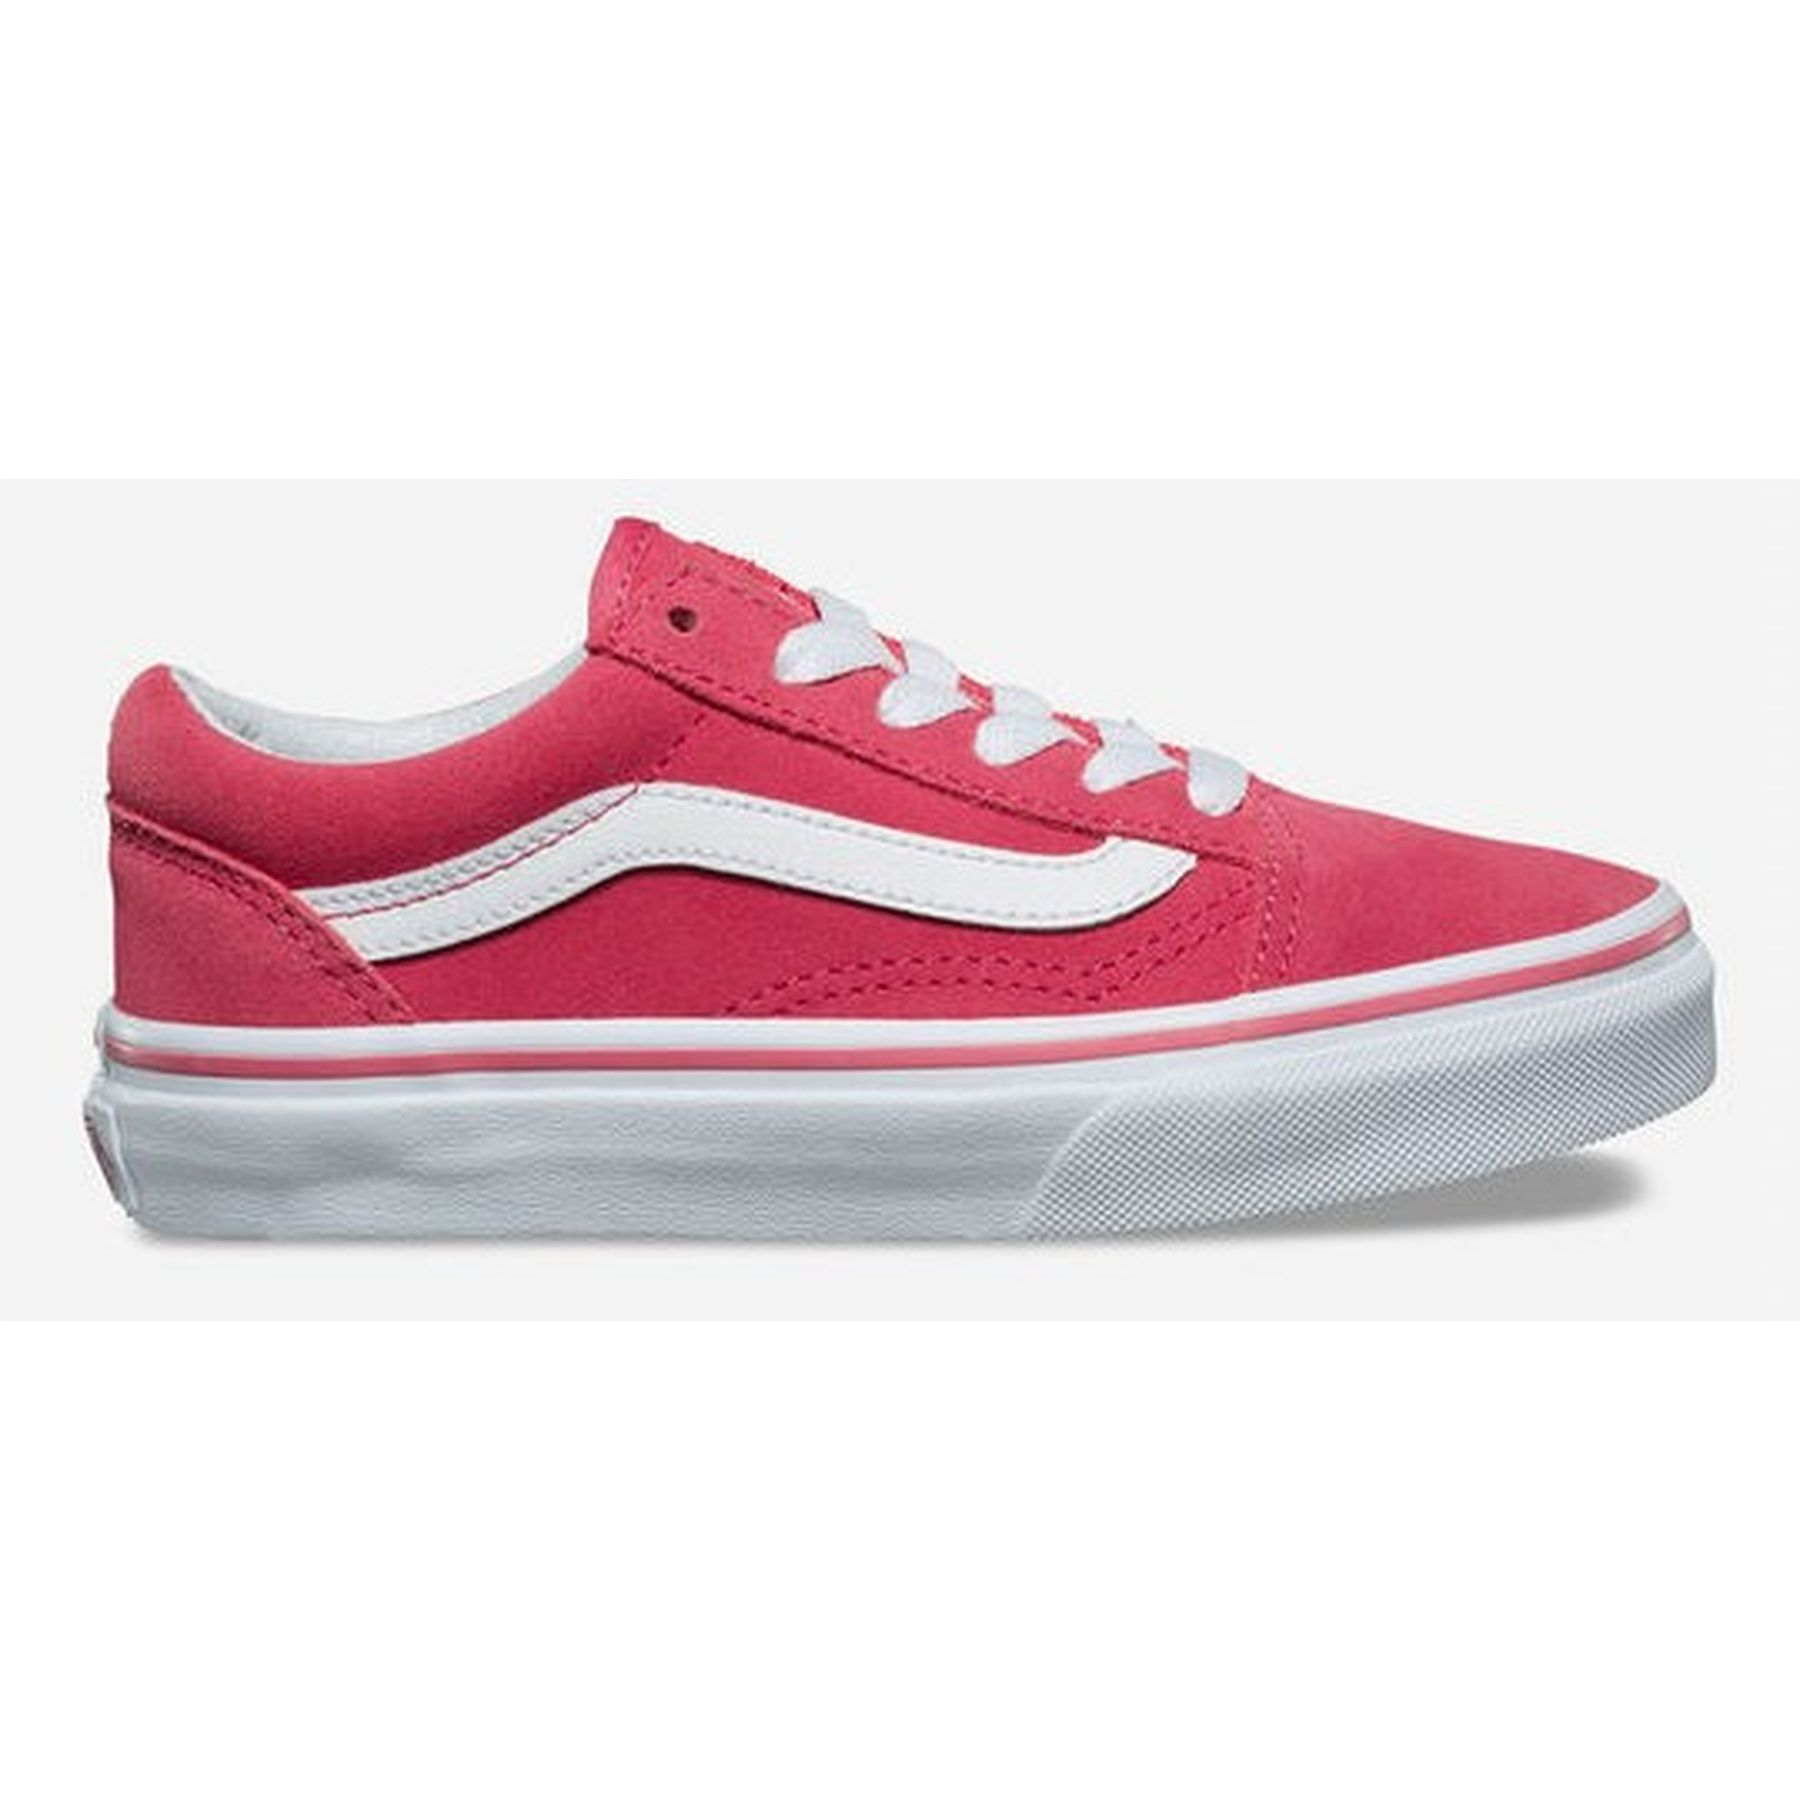 Kids Kid Skool Vans True Vans Girl Old White FOOTWEAR Desert S1819 and Suede Rose Republic 4ZpRxxdwq